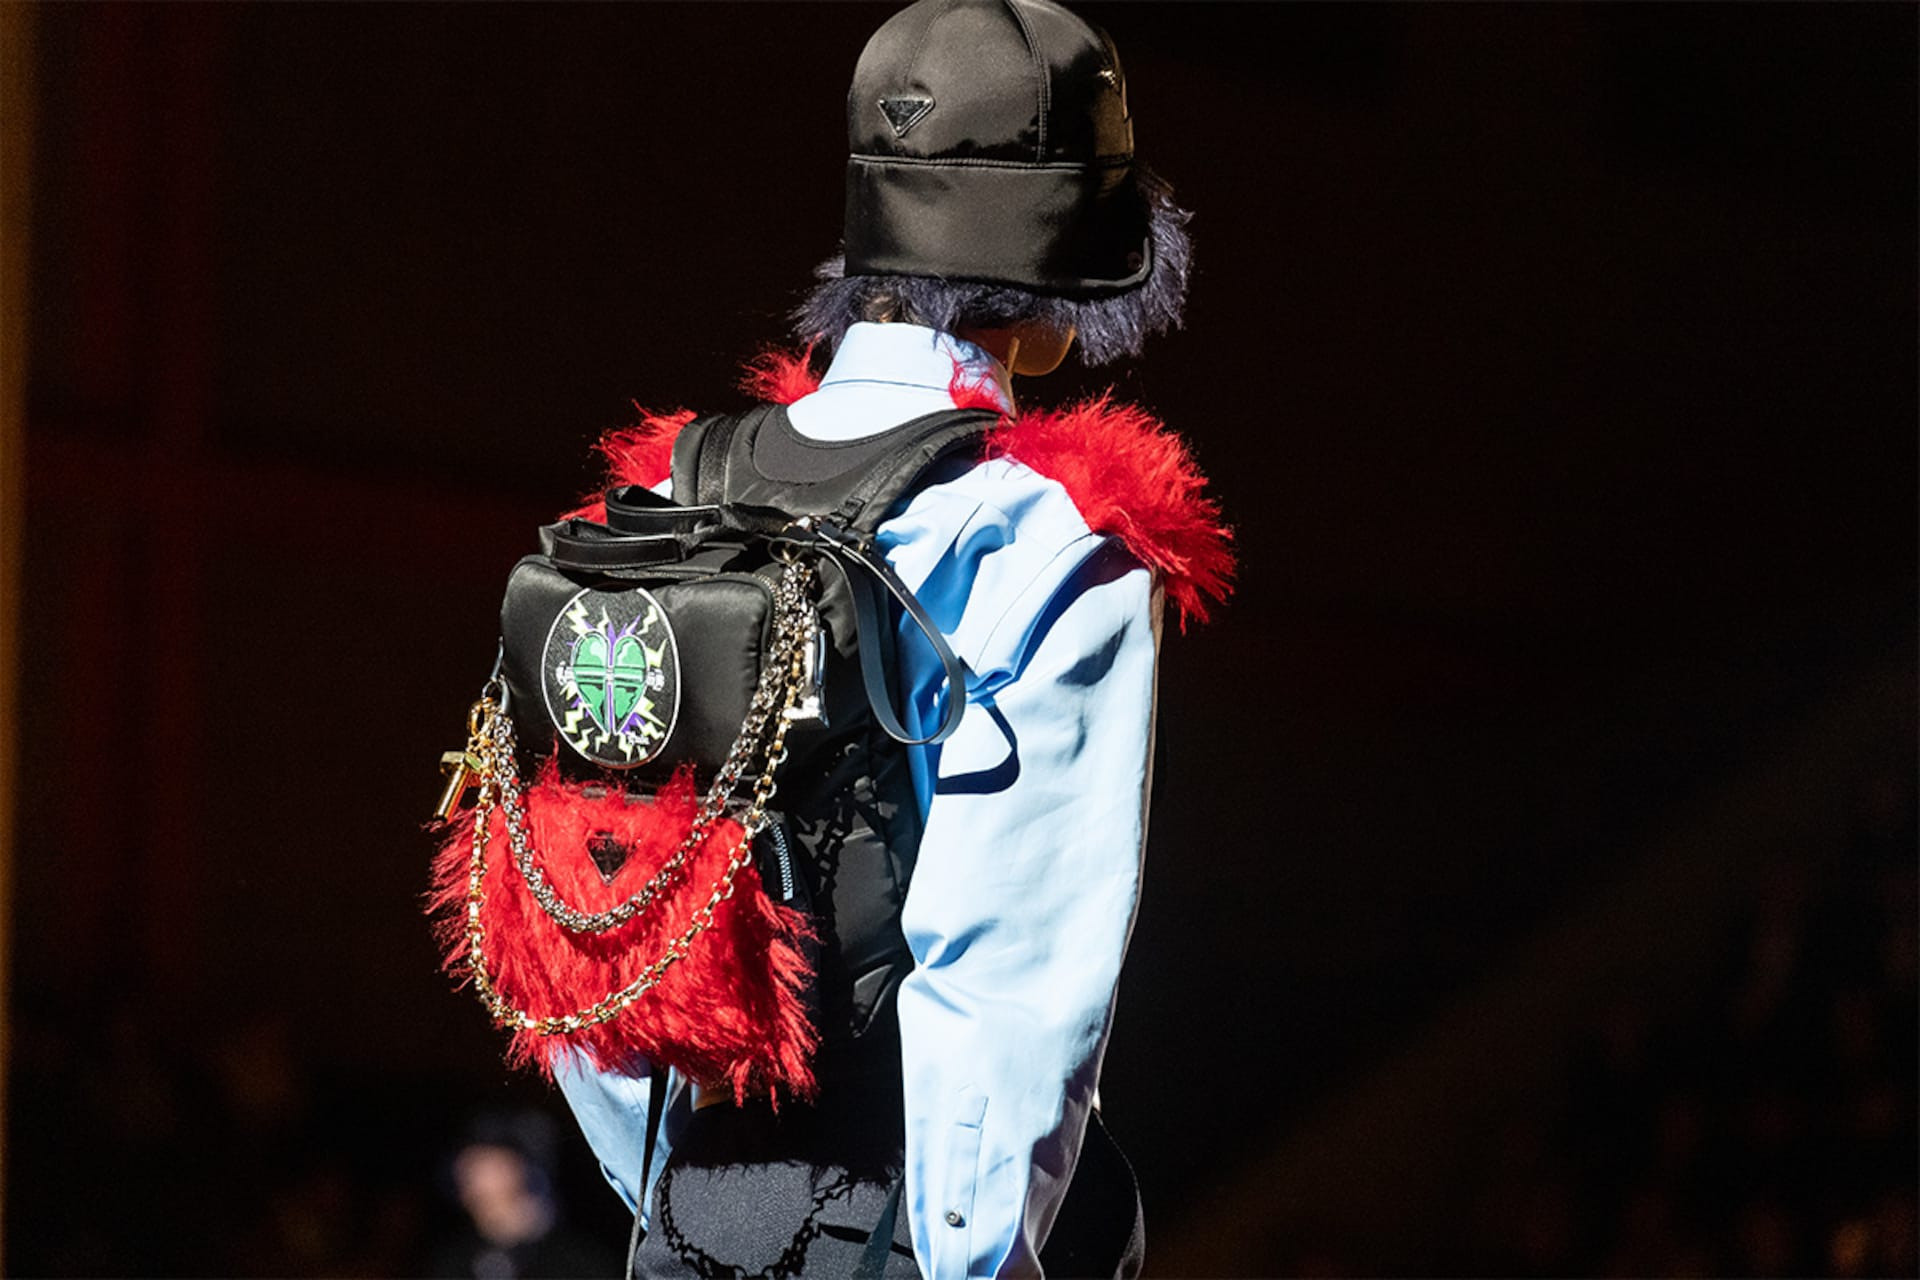 Prada Fall Winter 2019 Men's and Women's fashion show detail 1 with backpack and hat